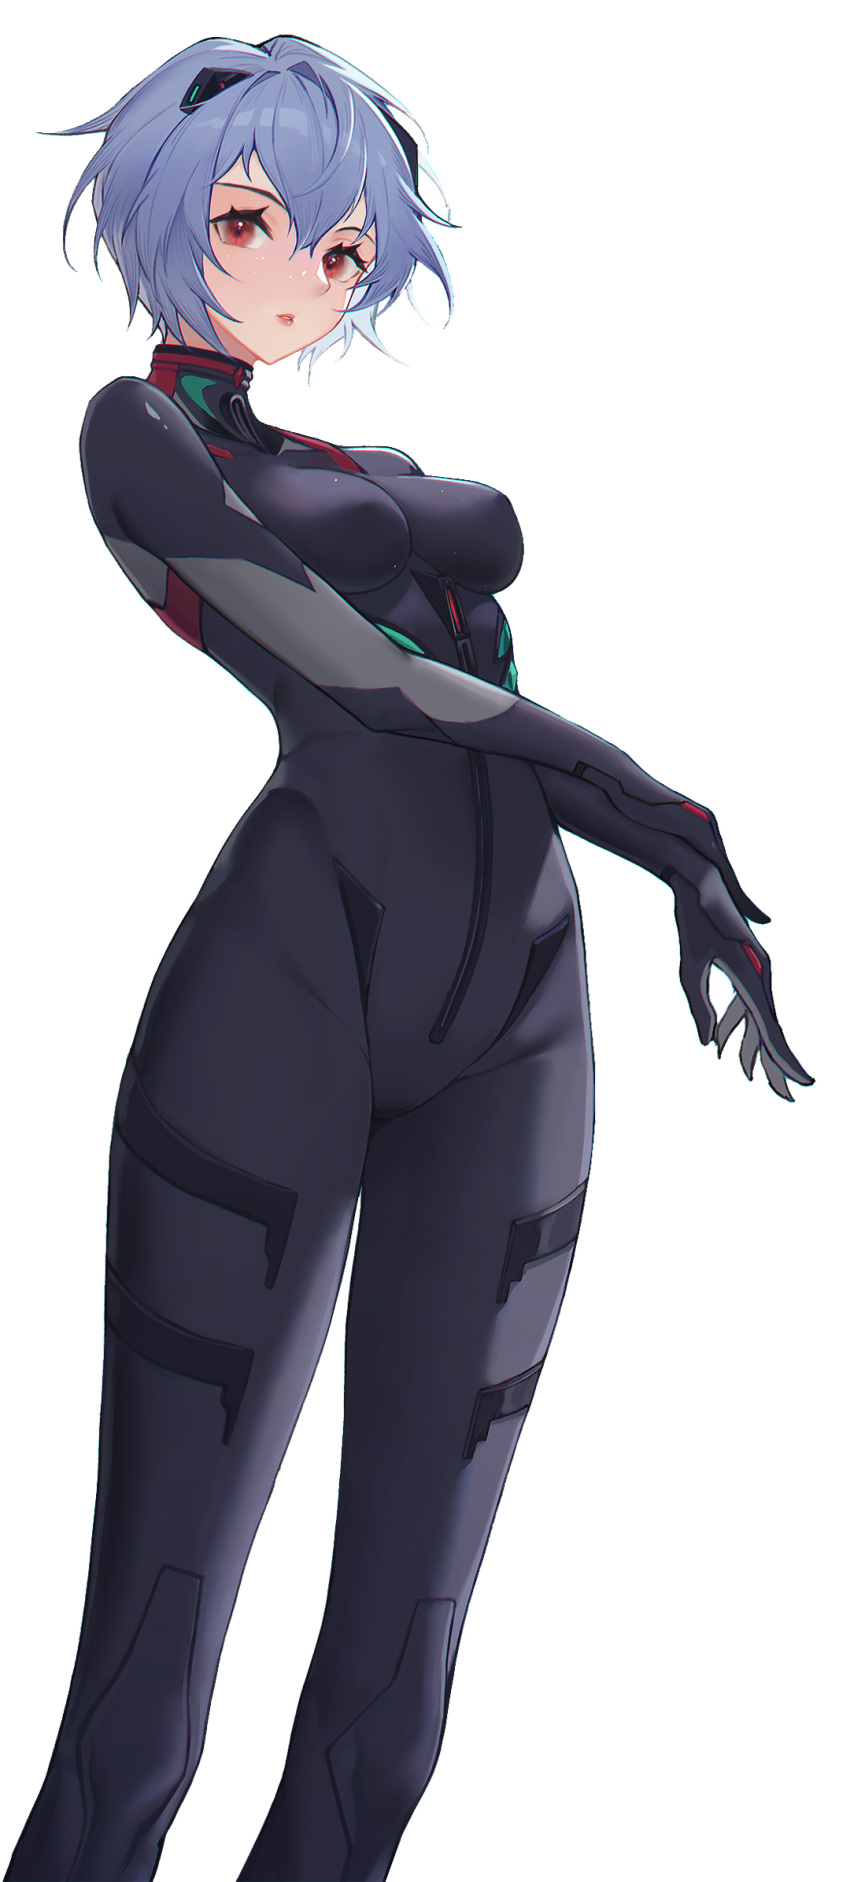 1girl ayanami_rei bangs black_bodysuit blue_hair bodysuit breasts commentary evangelion:_3.0_you_can_(not)_redo feet_out_of_frame highres interface_headset lips lis_zhu_long looking_at_viewer medium_breasts neon_genesis_evangelion parted_lips plugsuit rebuild_of_evangelion red_eyes short_hair simple_background skin_tight solo white_background